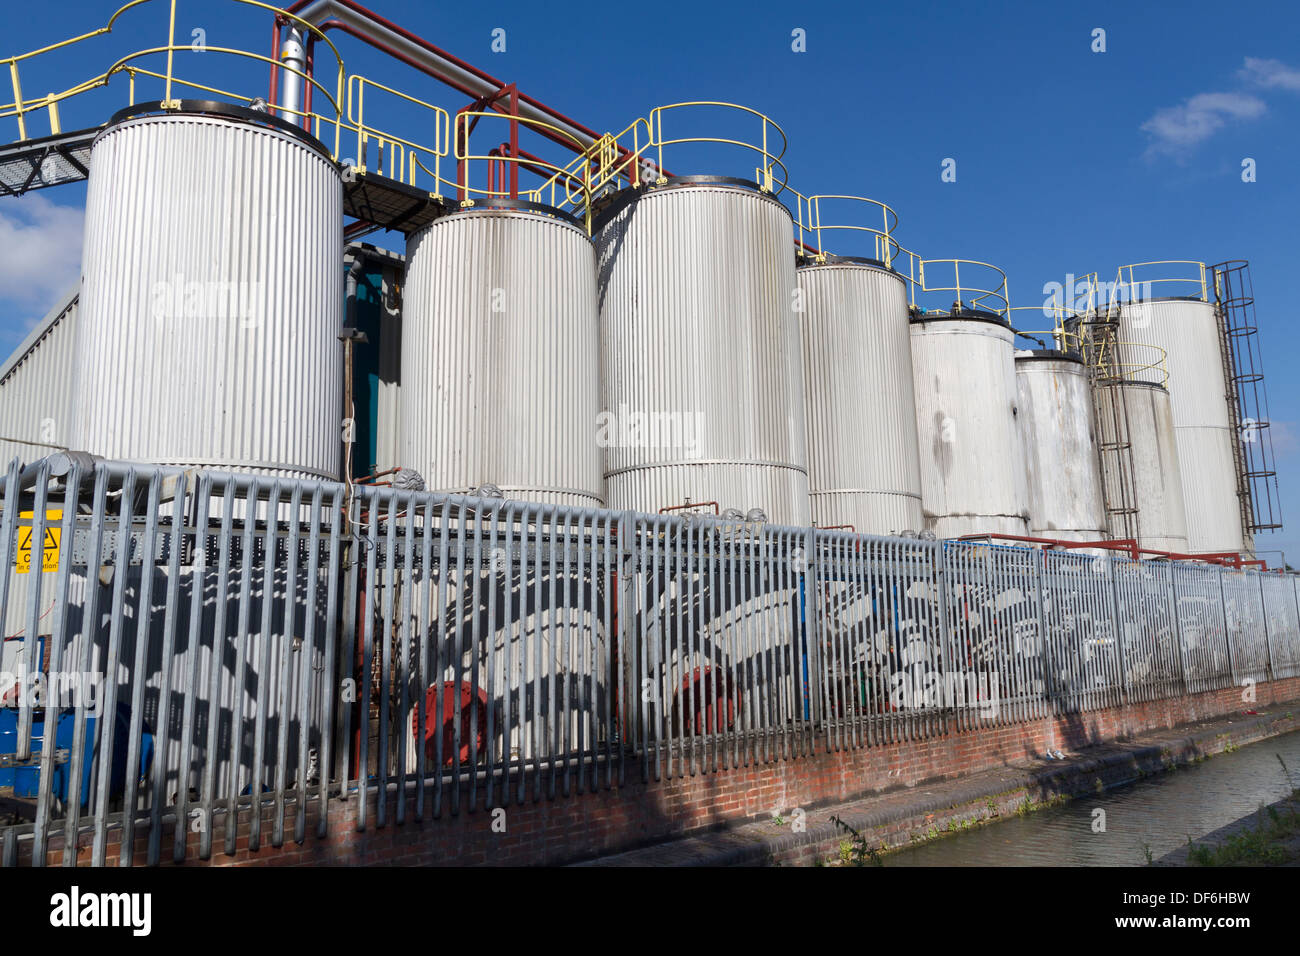 Storage tankers within a chemical works UK - Stock Image